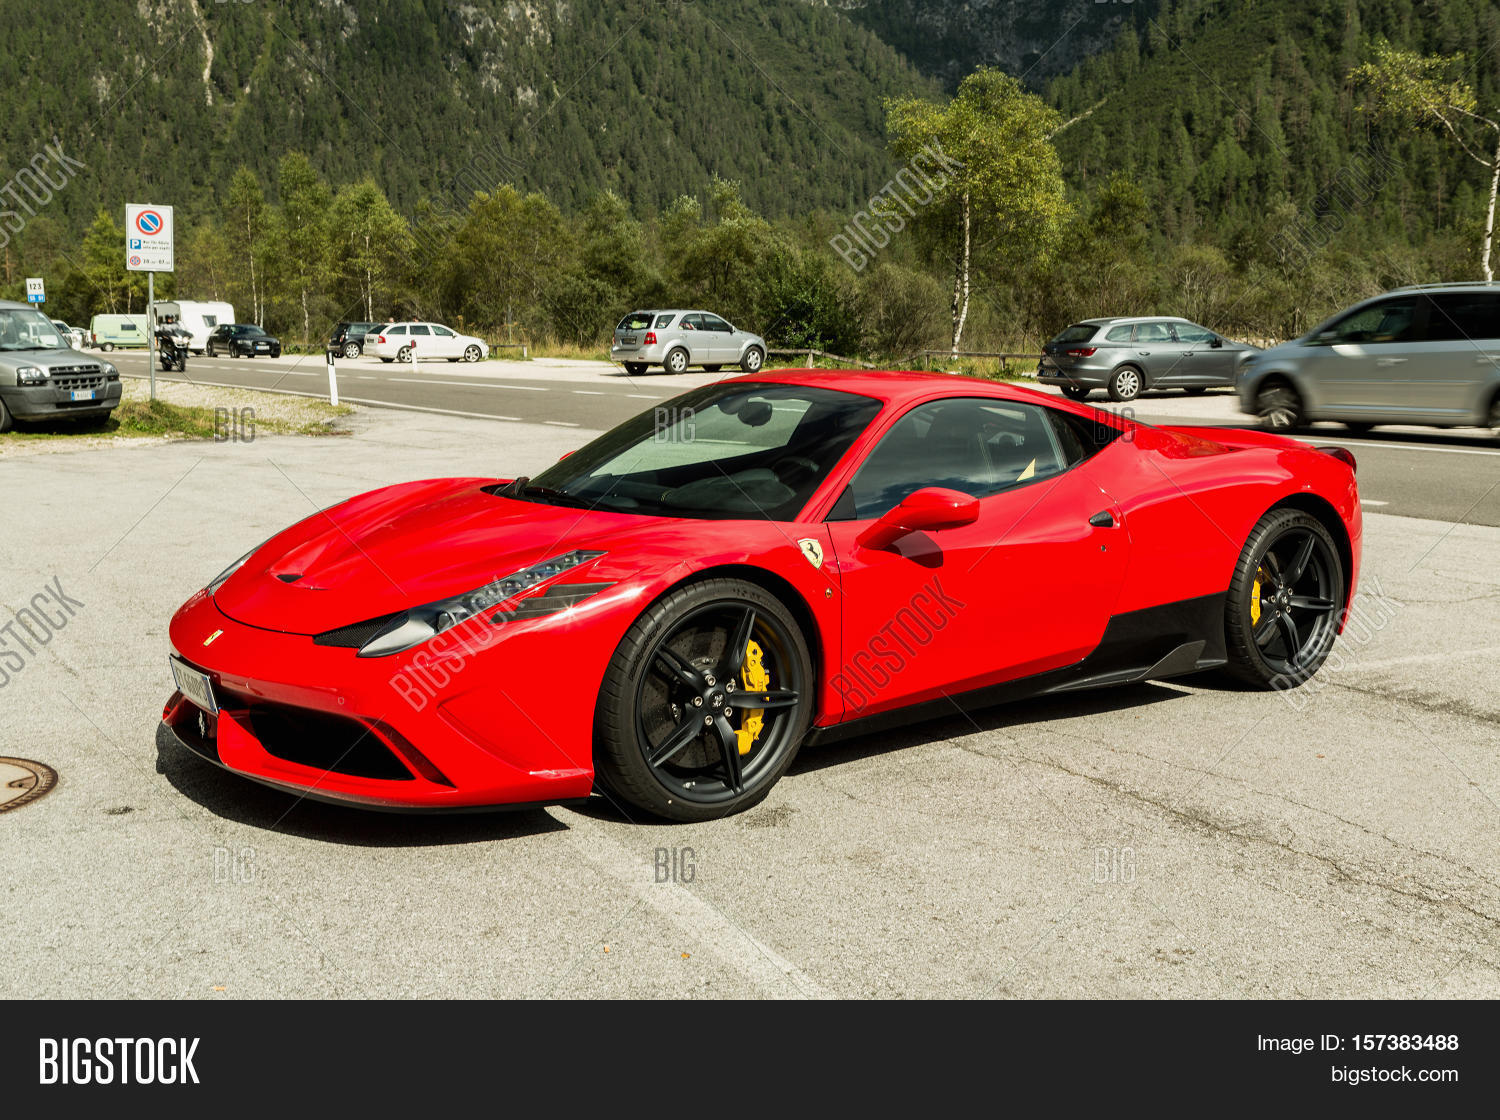 dolomiti lago di landro italy september 10 2016 red ferrari 488 gtb parking on - 2016 Ferrari 458 Replacement